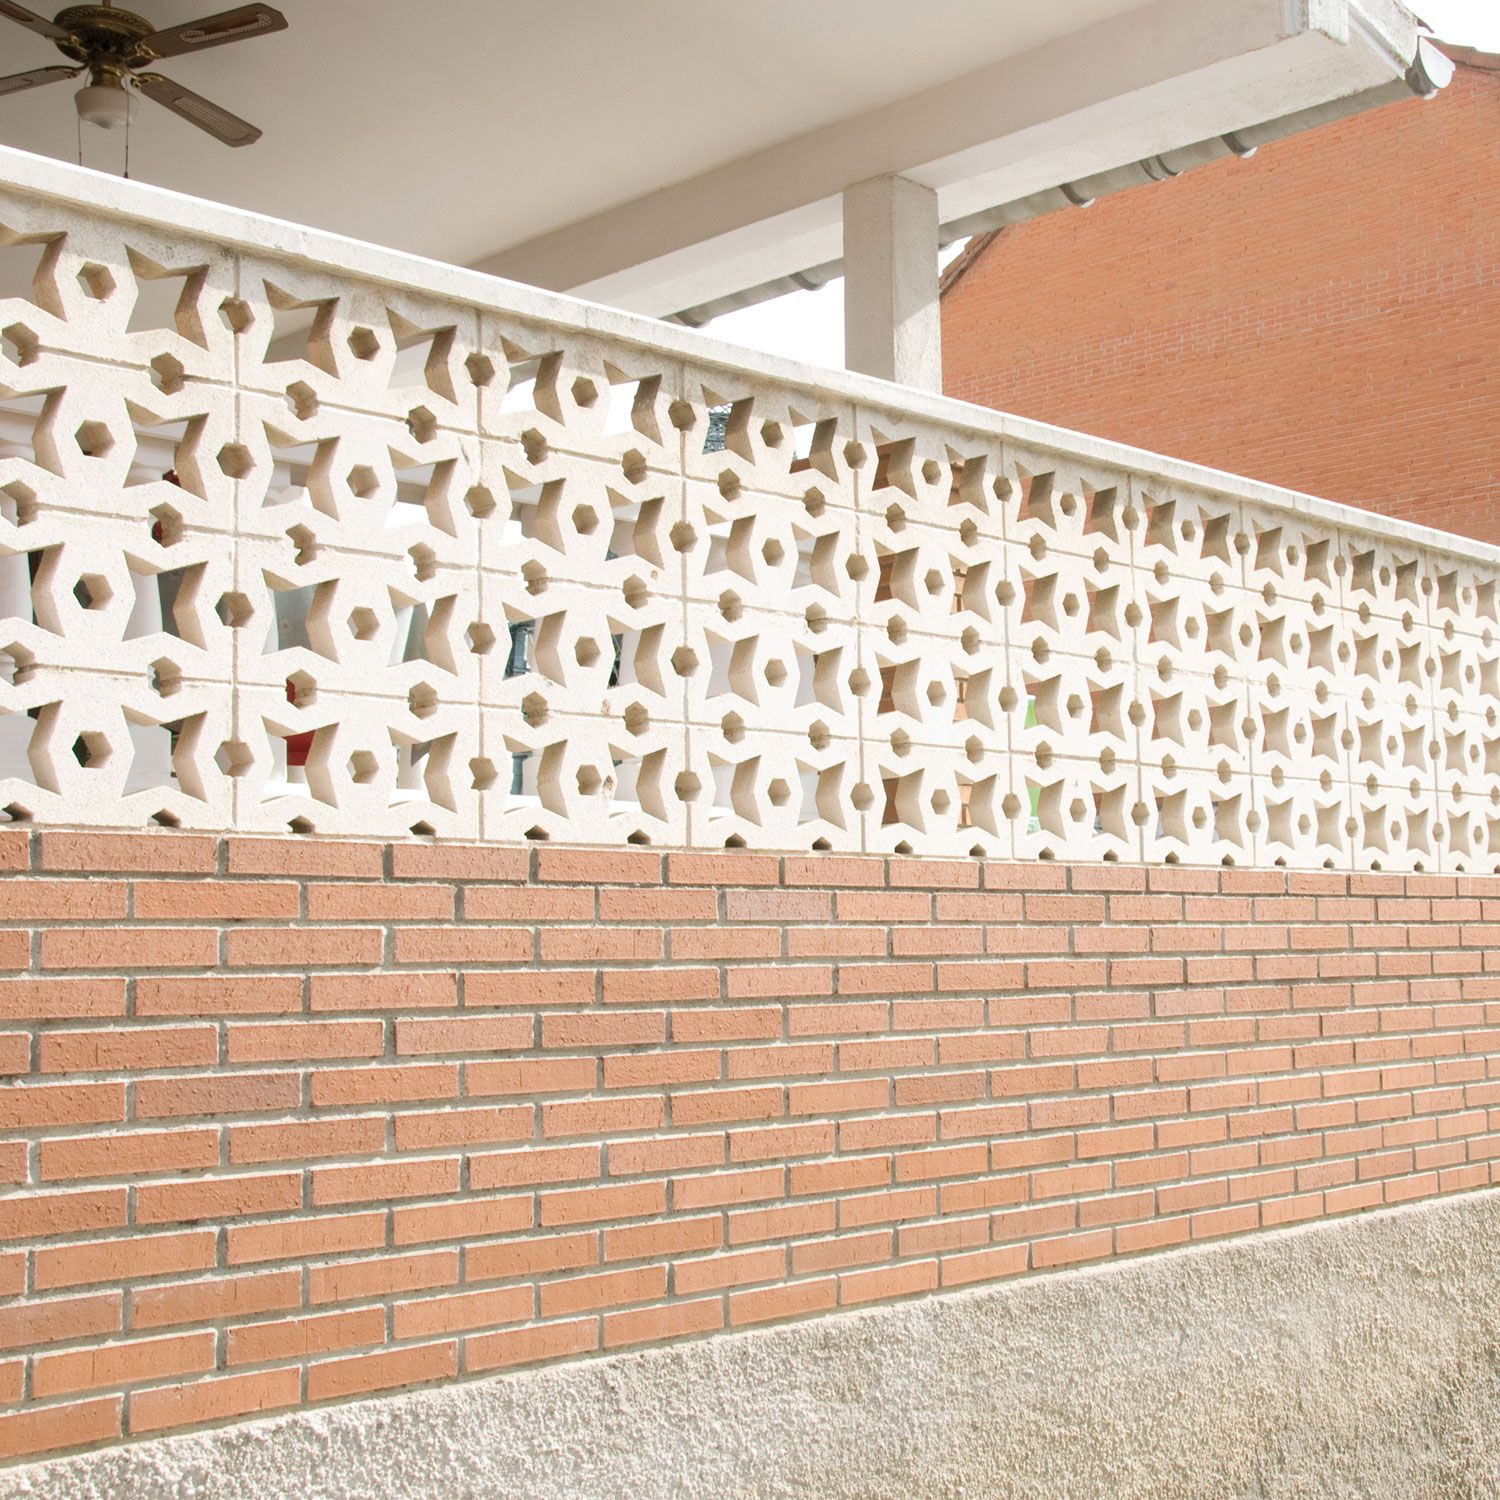 Celos A Estrella Celos As Decorativas Decorative Bricks  ~ Celosias De Madera Leroy Merlin